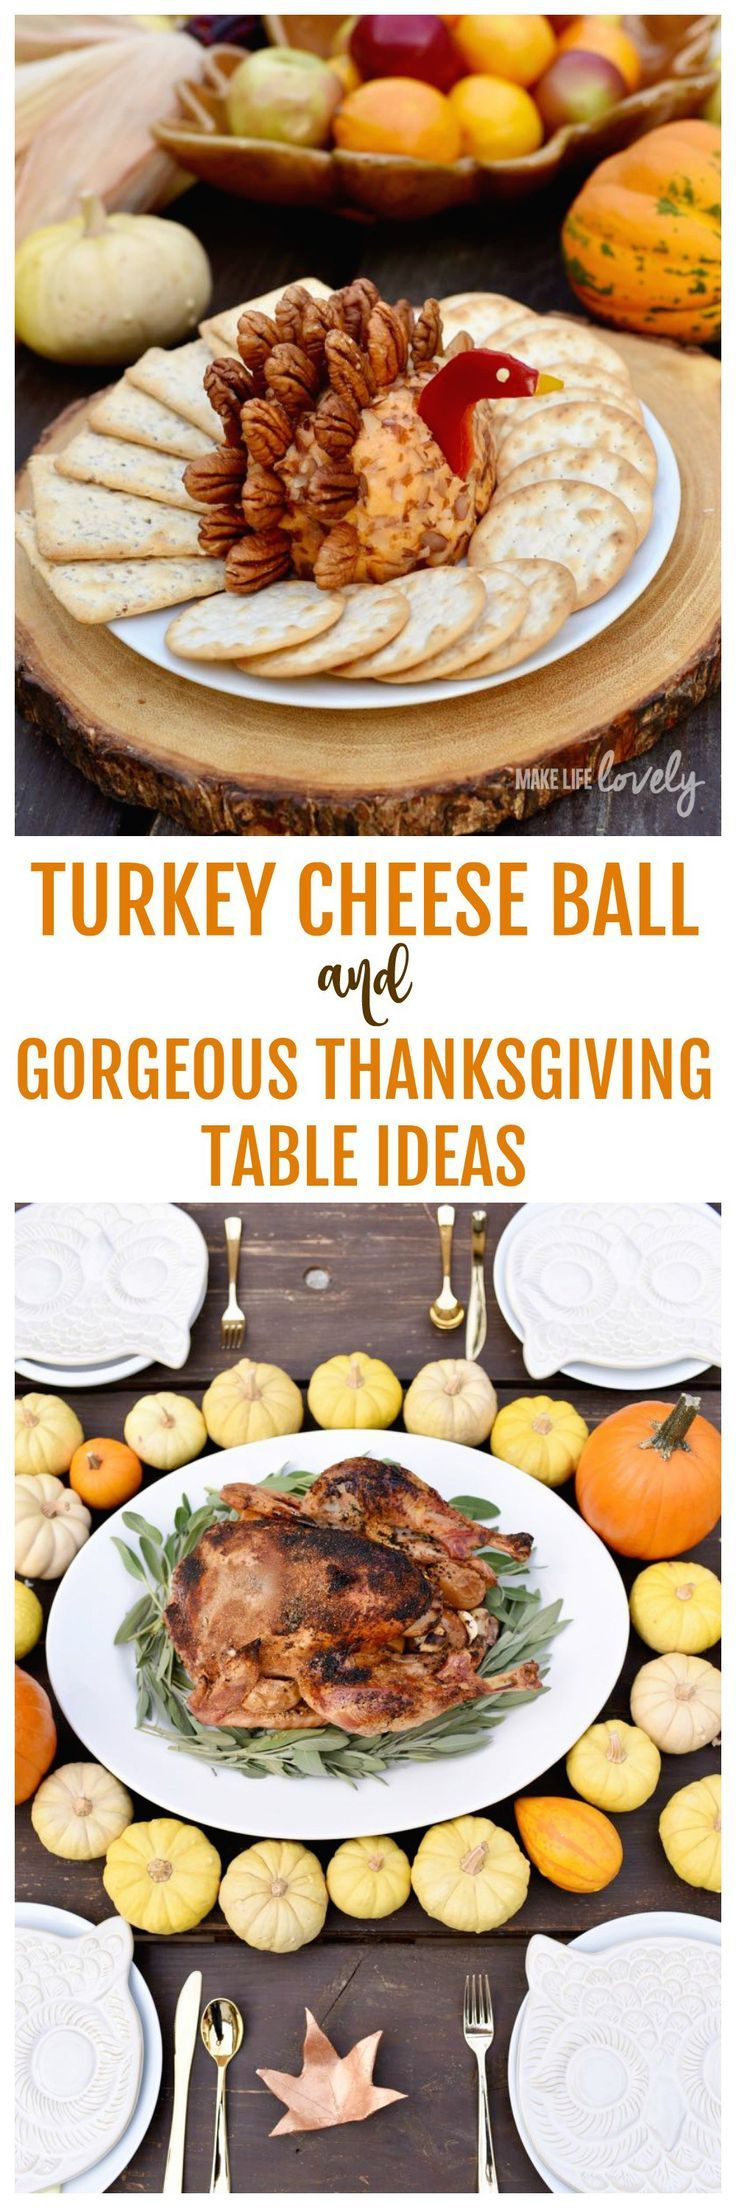 Turkey cheese ball and gorgeous Thanksgiving table ideas. Make this adorable and delicious turkey cheese ball in just 15 minutes! Get inspired by this beautiful Thanksgiving table.